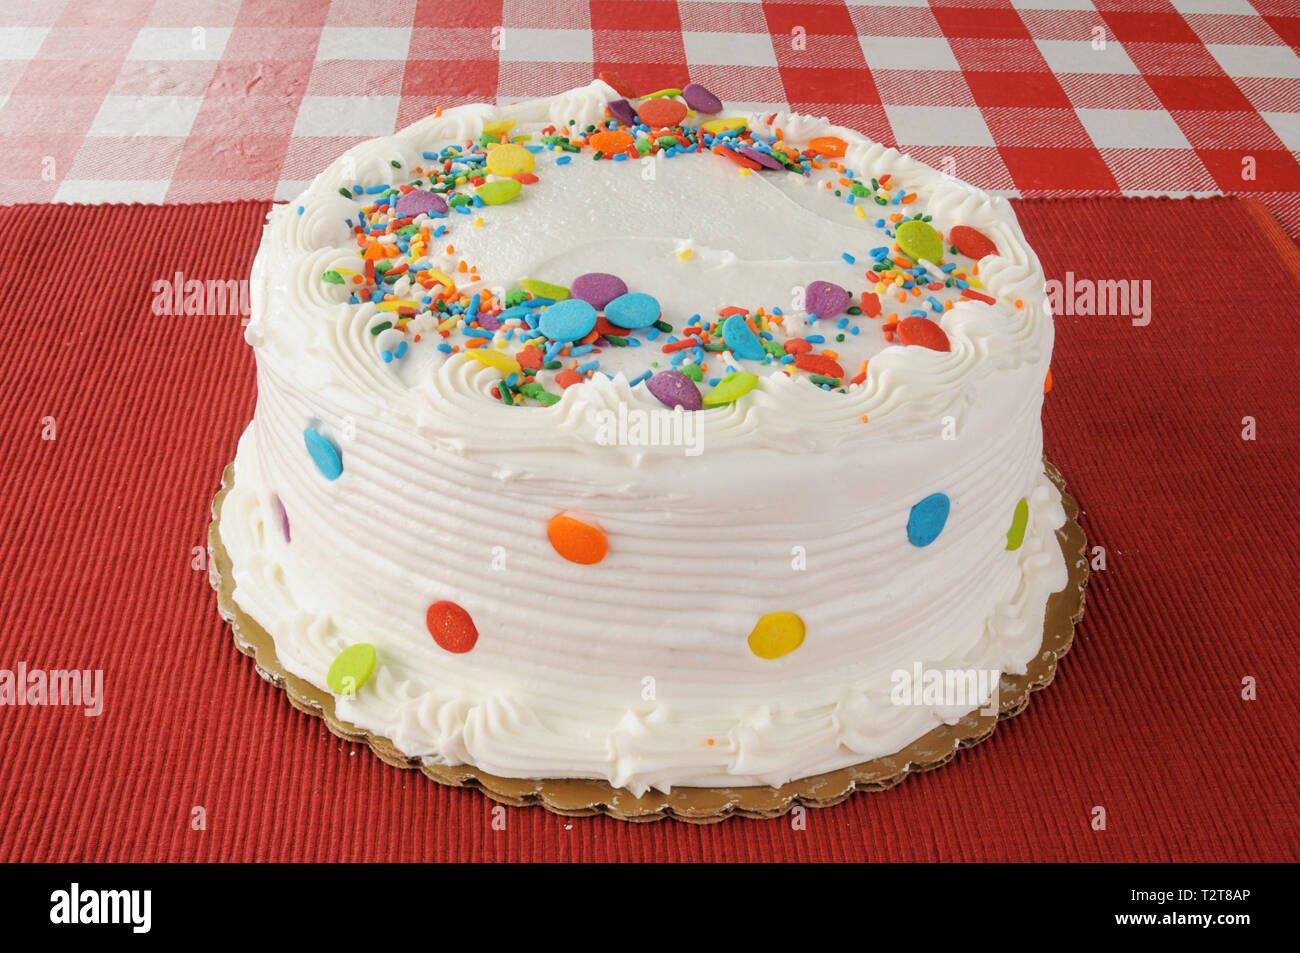 A whole white cake on a checkered tablecloth with candy sprinkles - Stock Image